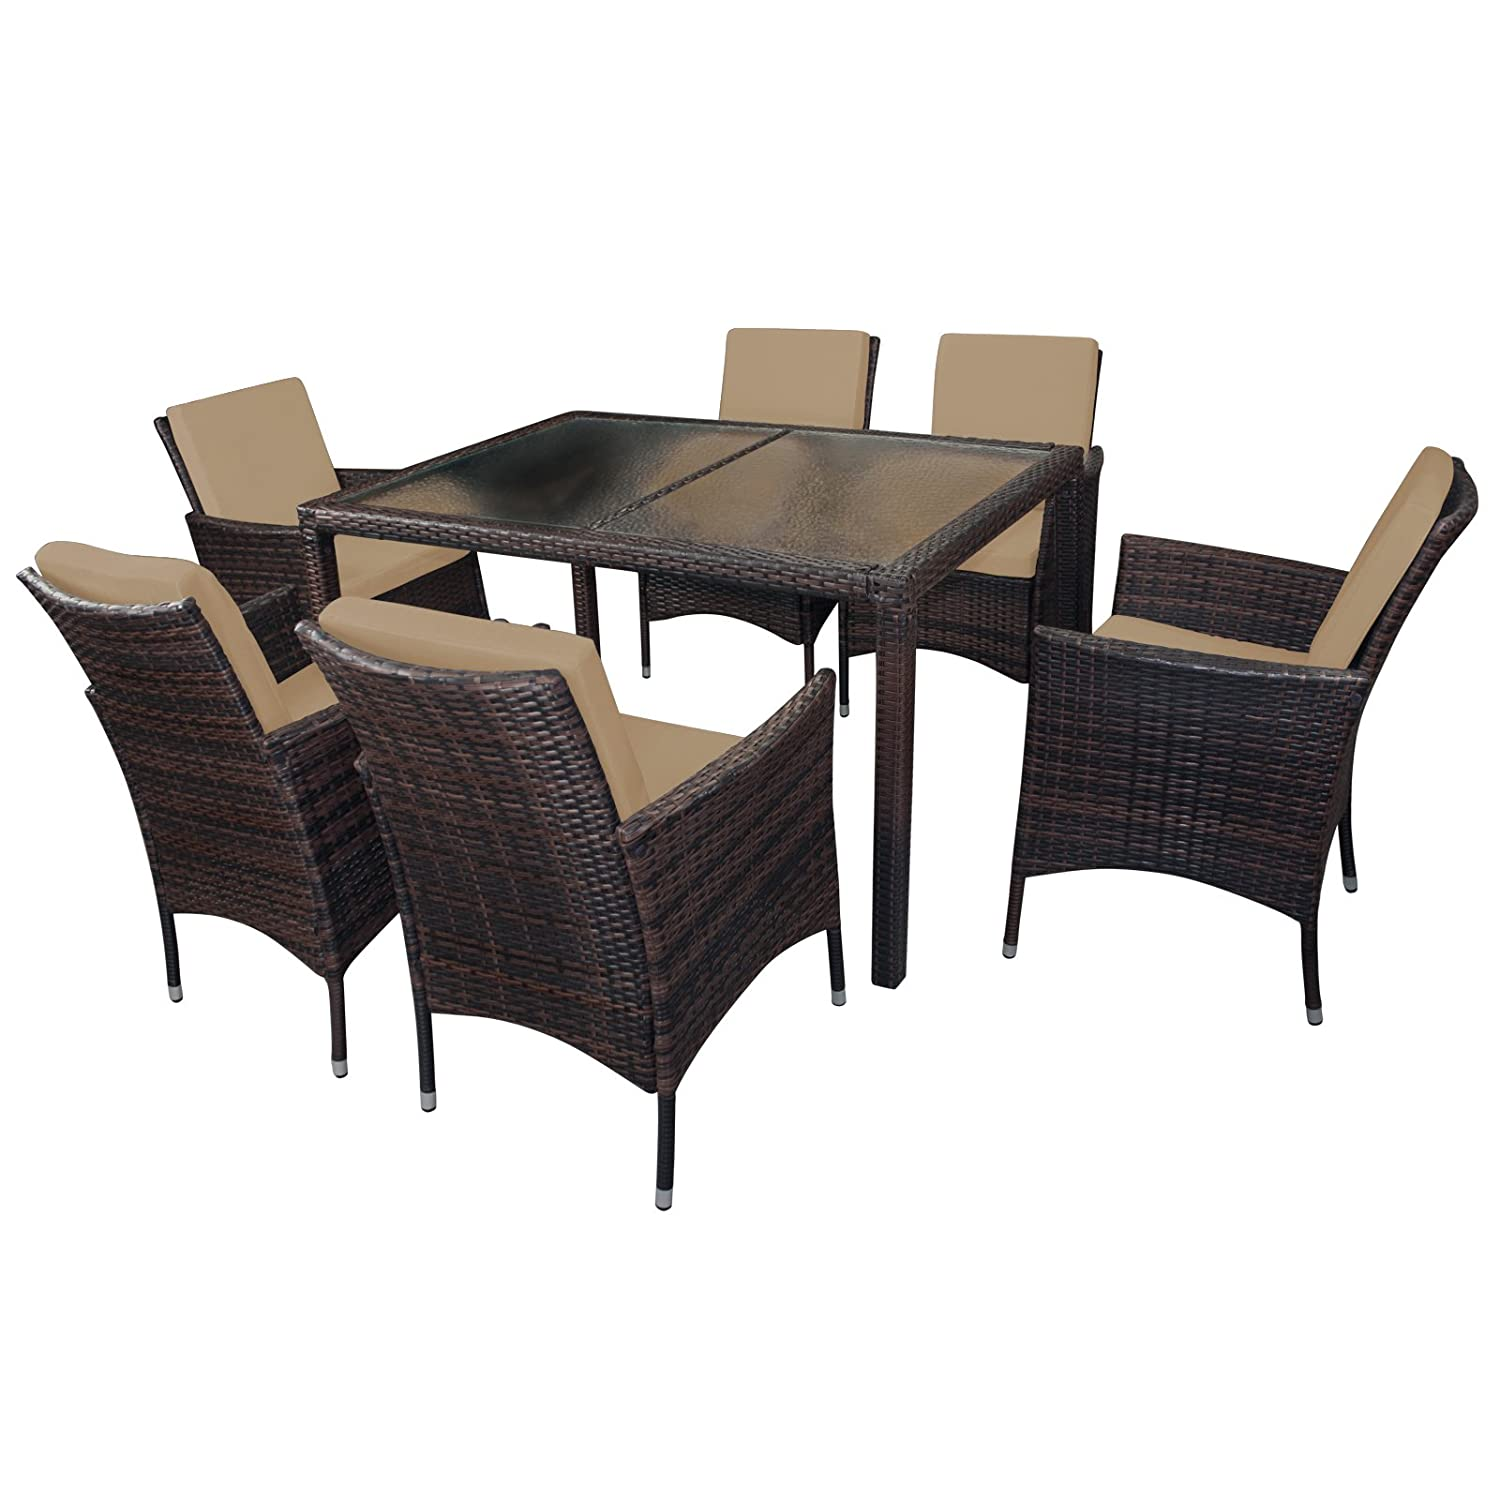 19 teilige polyrattan essgruppe margarita f r 6 personen. Black Bedroom Furniture Sets. Home Design Ideas